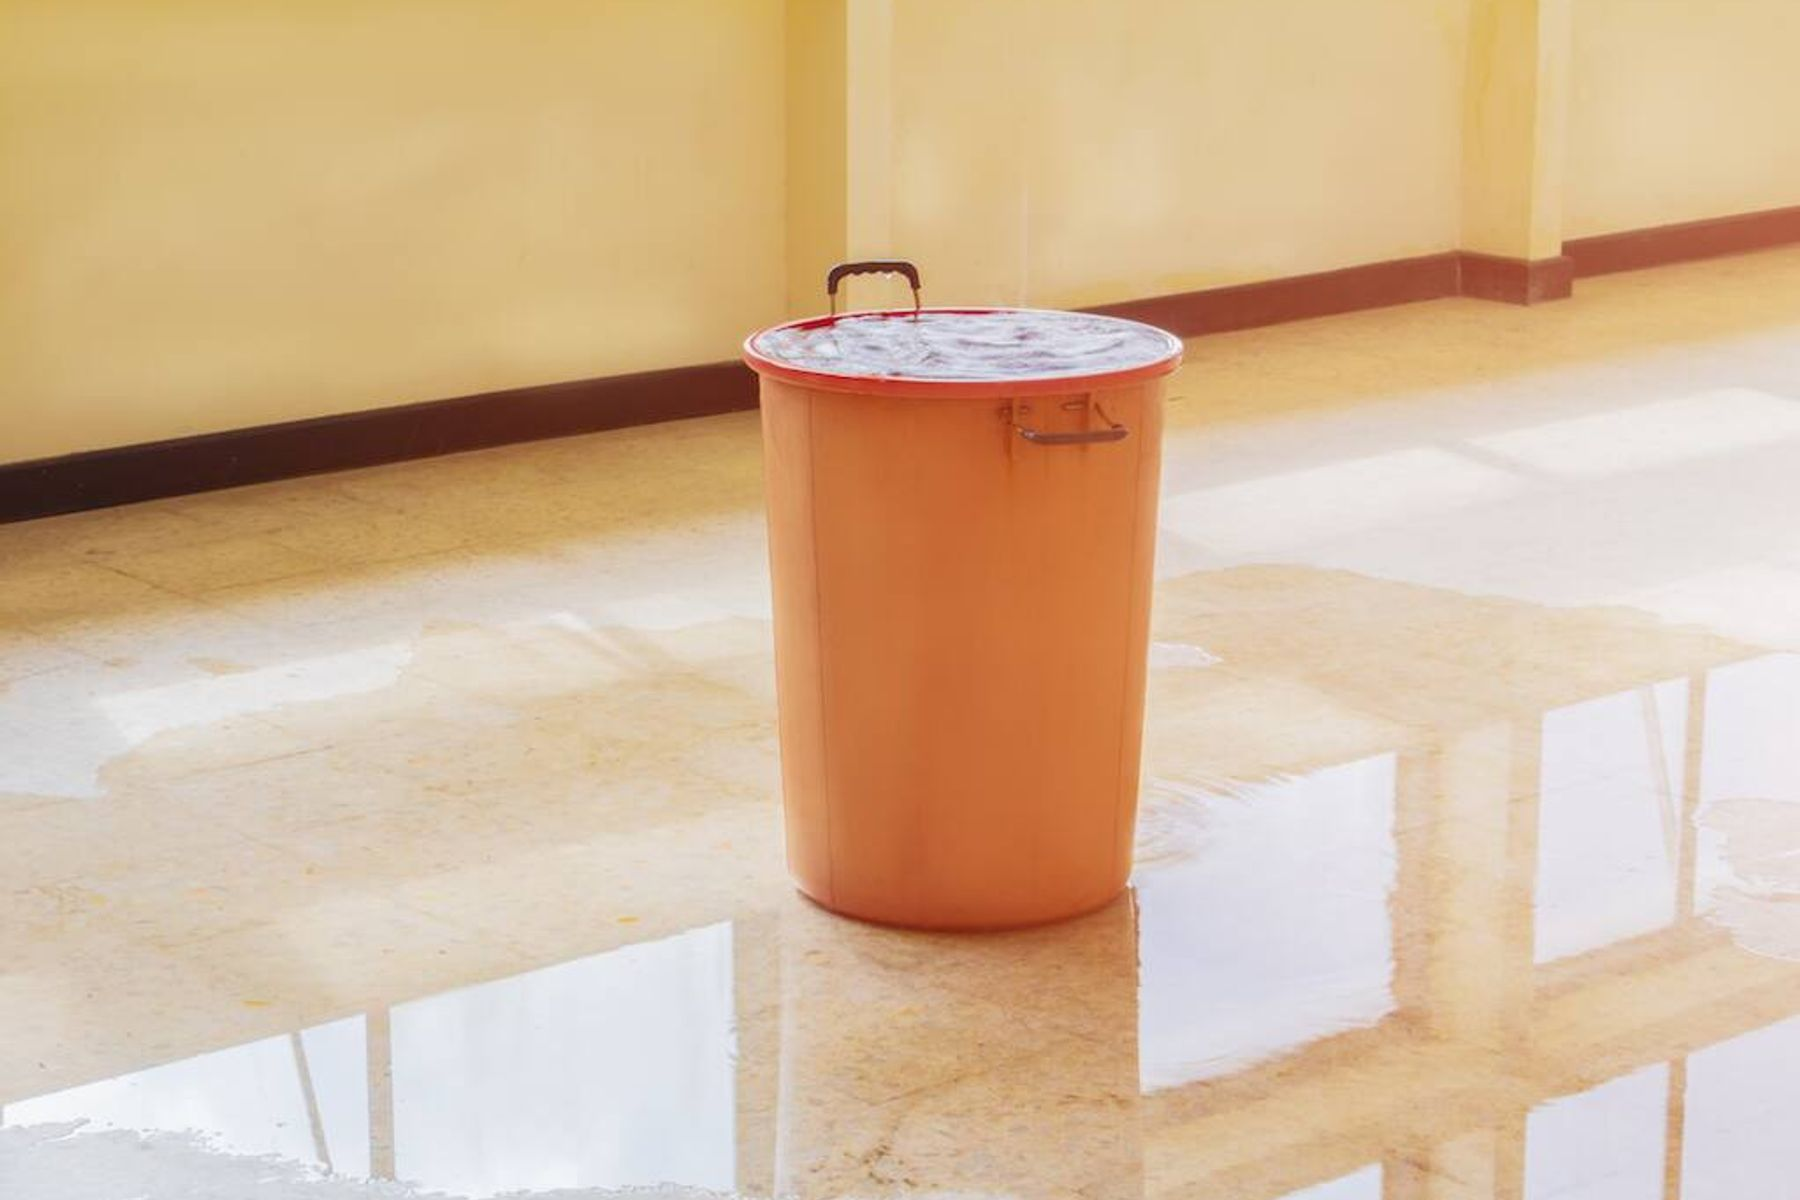 An orange bucket in the middle of the floor, collecting water dripping from the ceiling